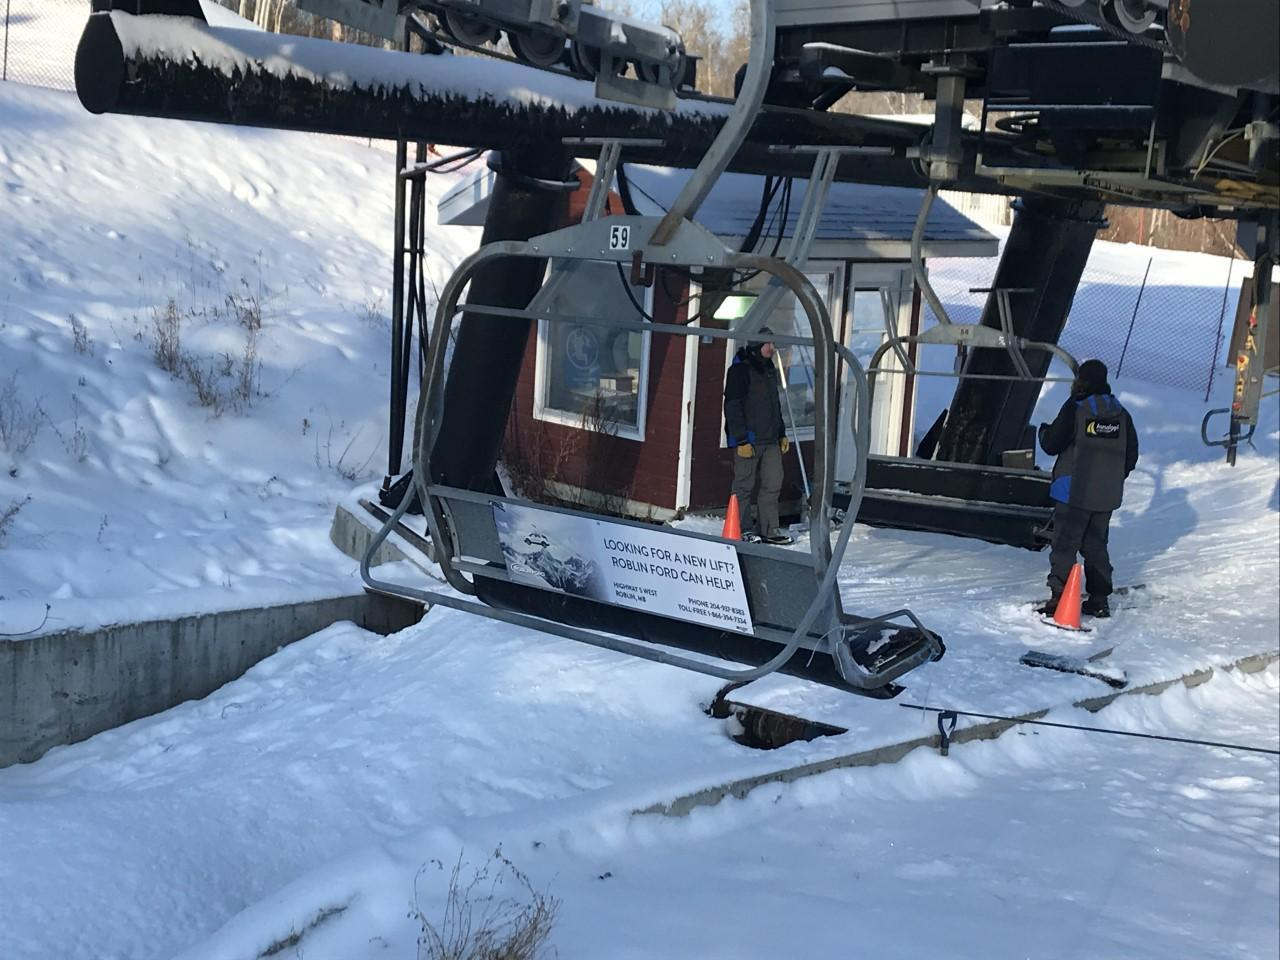 Asessippi Chair Lift